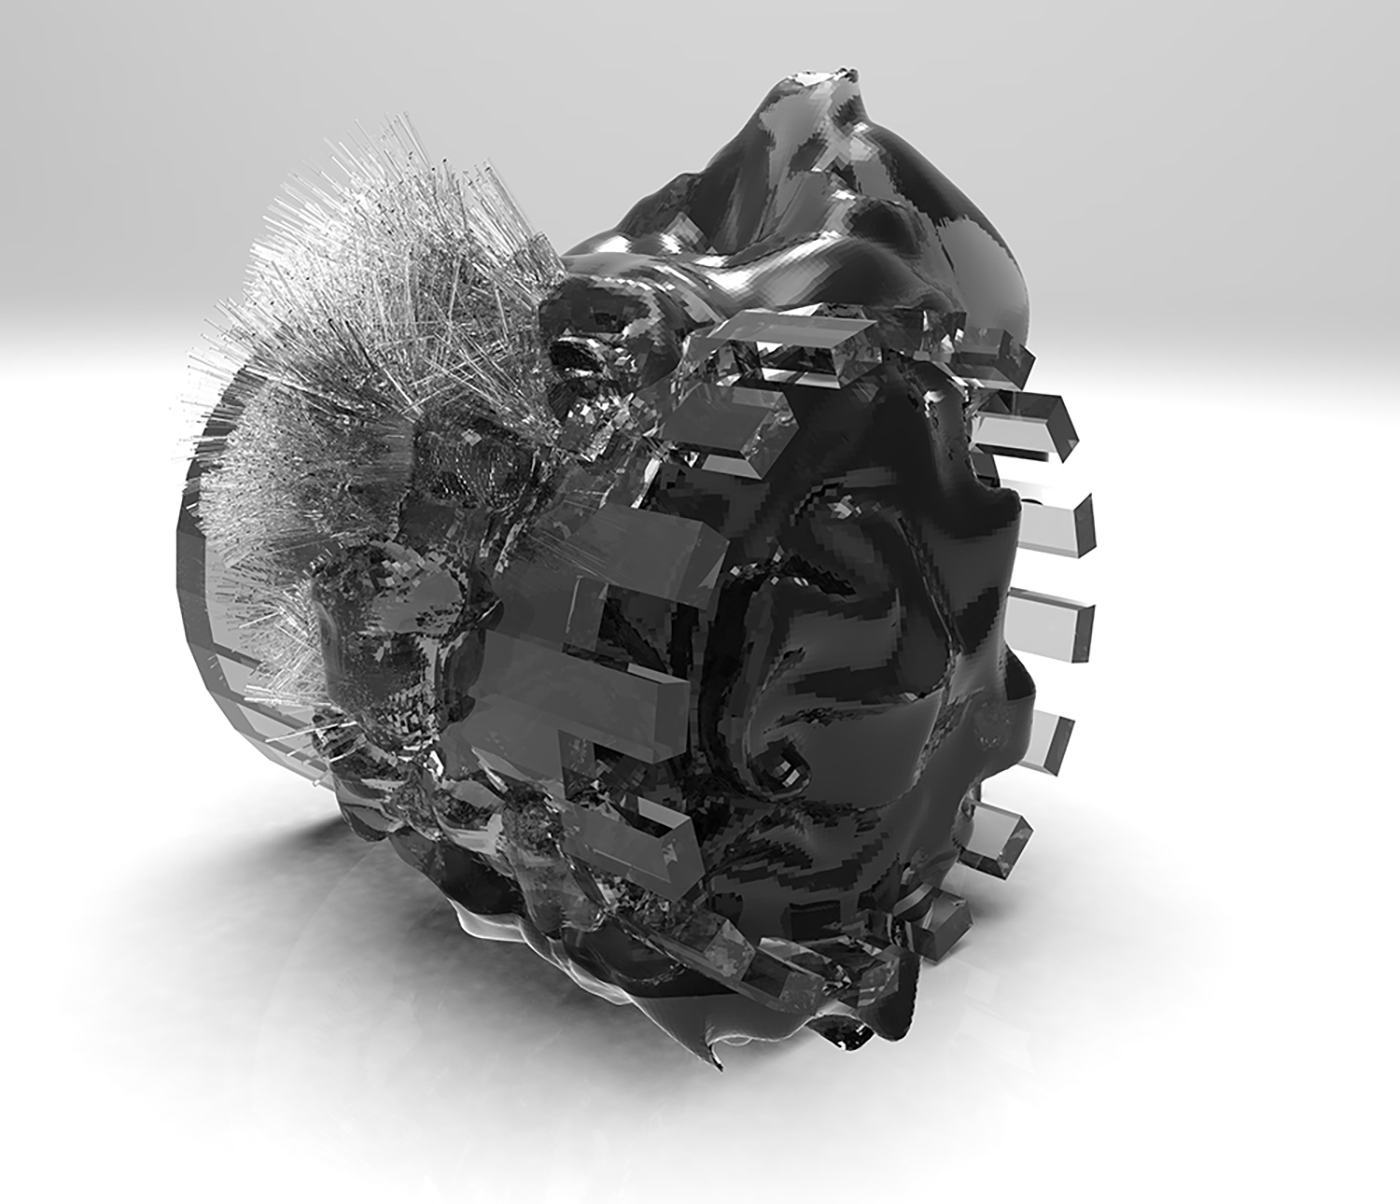 An engine nacelle with glue and anemones, structured specifically to ender the turbine collider.